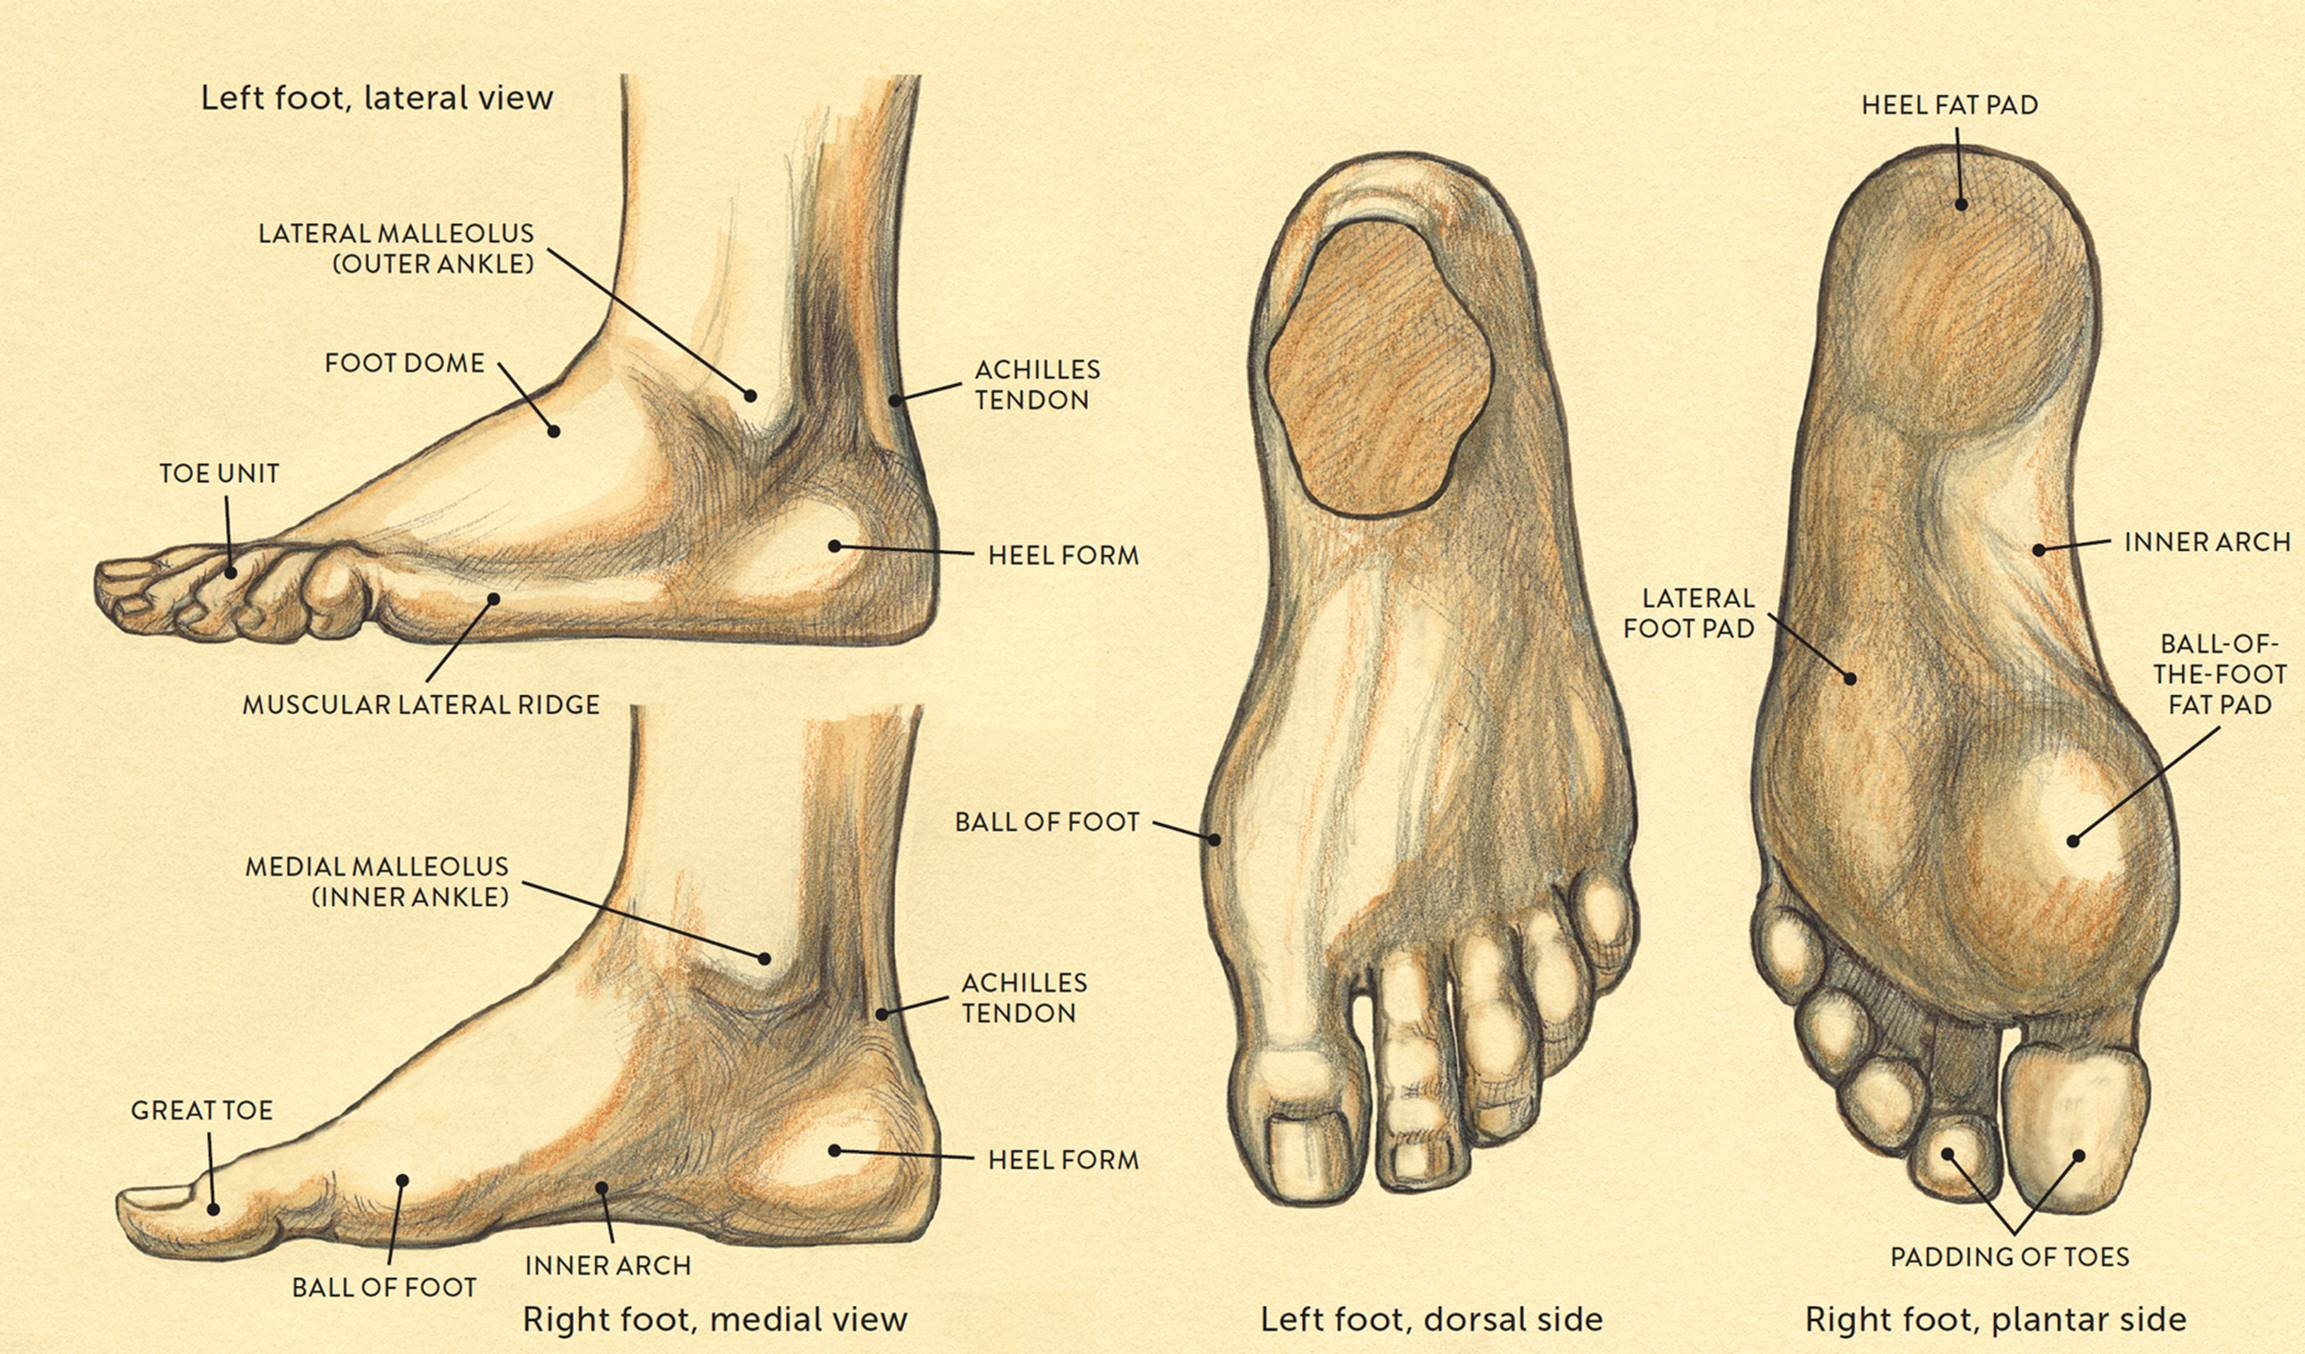 Anatomy Of The Heel Pad Images - human body anatomy